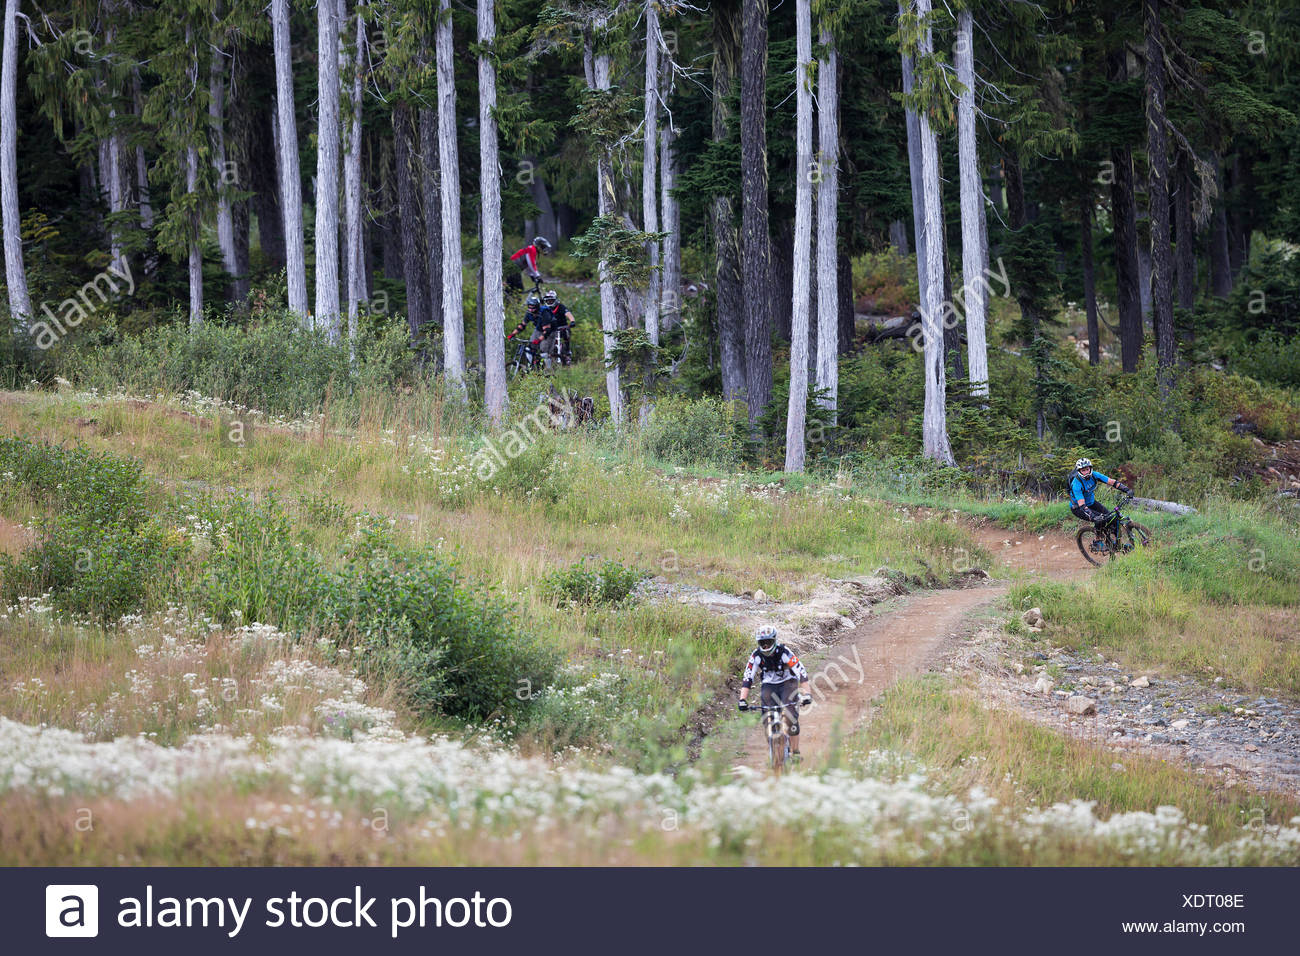 A group of mountain bikers emerges from the forest at the bottom of a trail at Mt. Washington, The Comox Valley, Vancouver Island, British Columbia, Canada - Stock Image